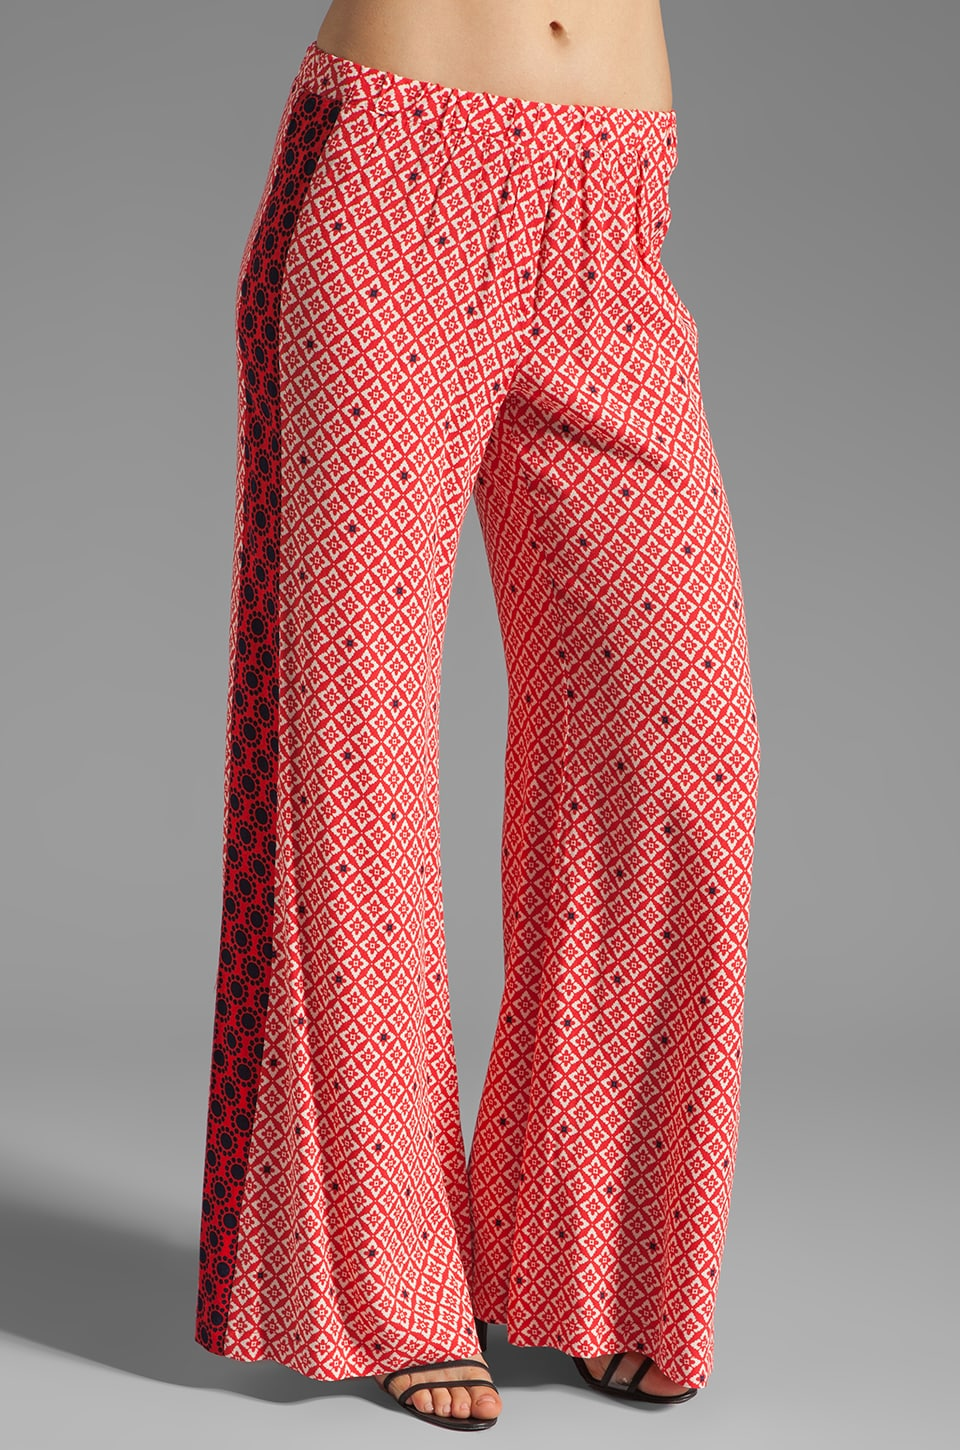 Ella Moss Sun Tile Pant in Poppy